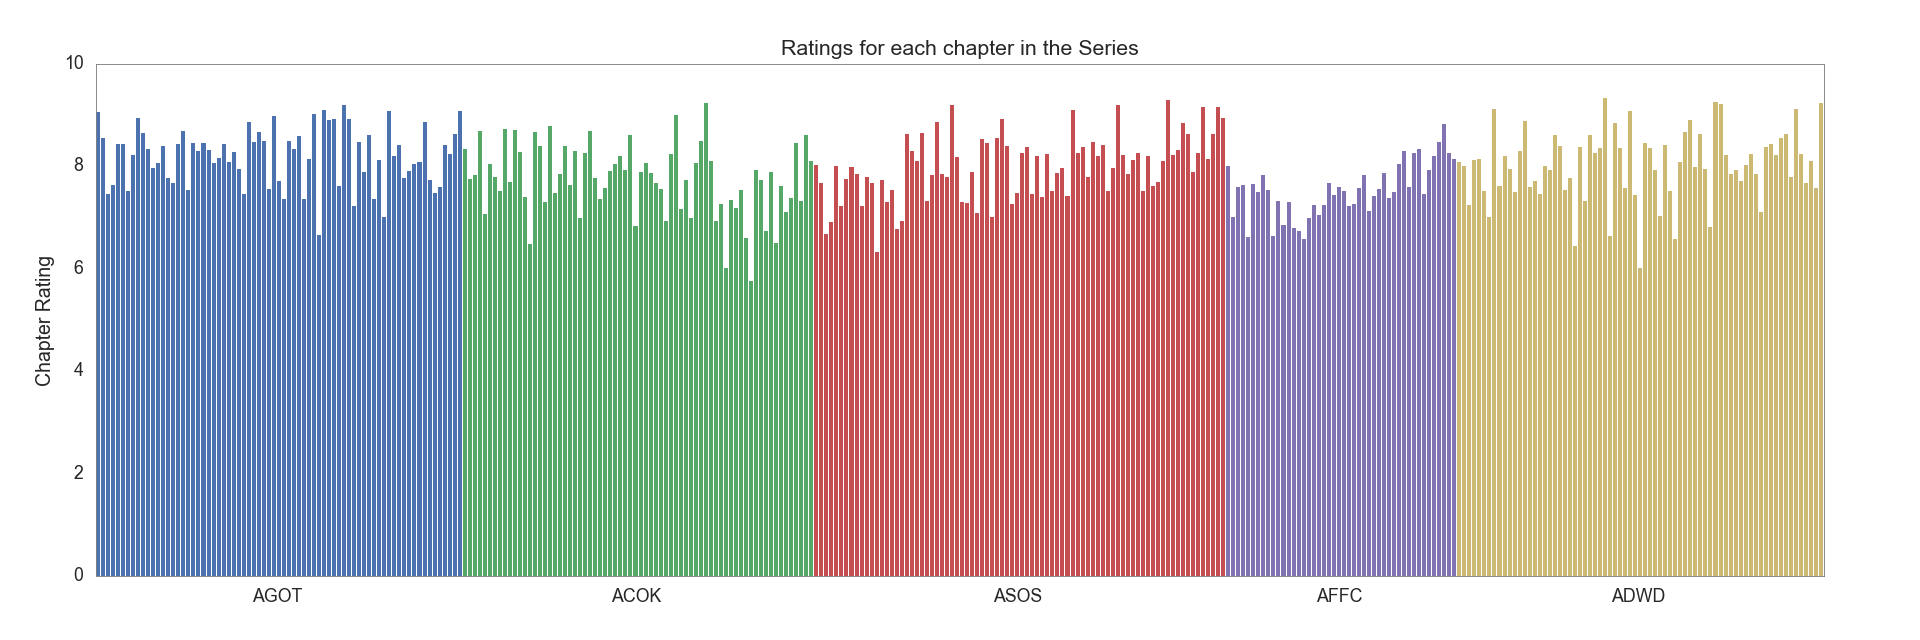 Chapter ratings in all books